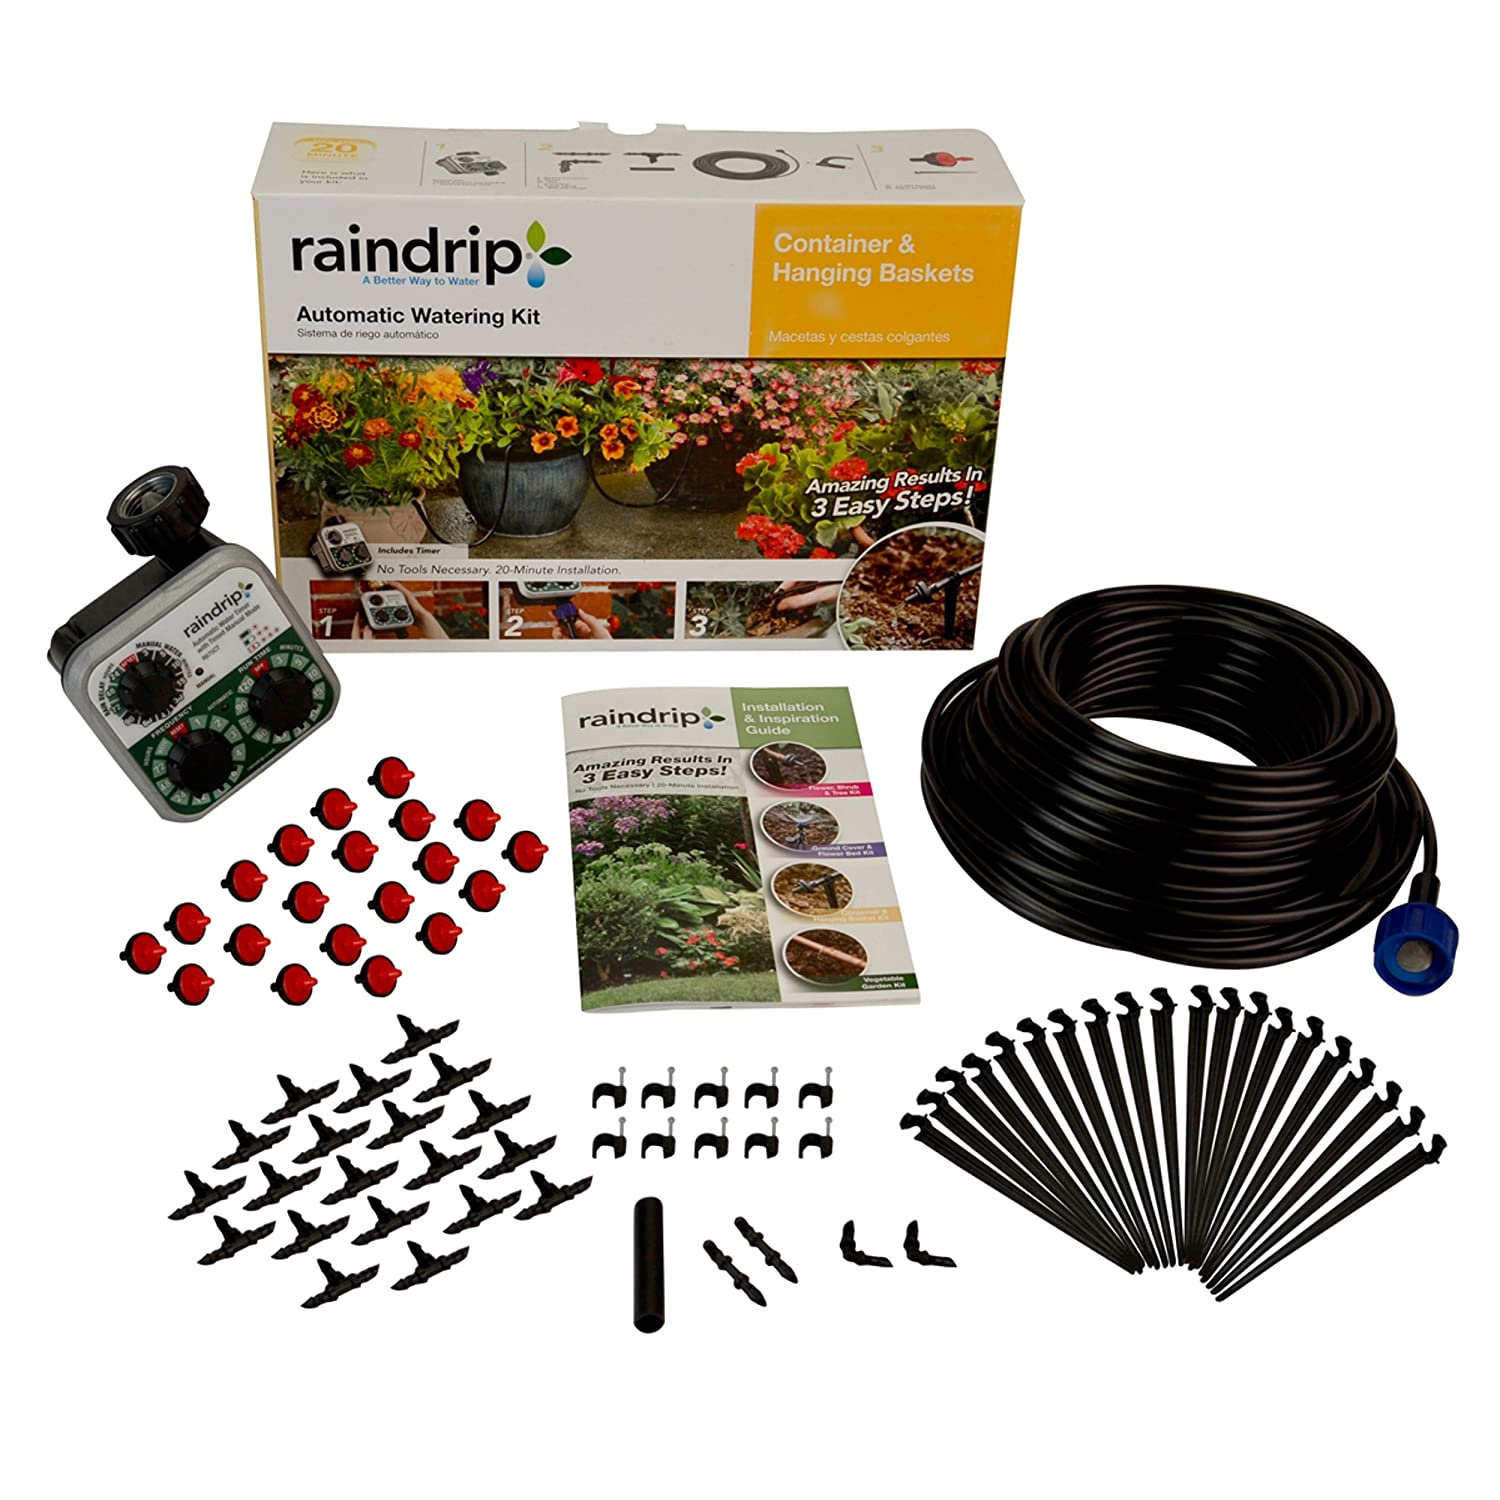 Patio And Potted Plant Drip Irrigation Kit: Raindrip Drip Irrigation Plants Garden Hose Timer